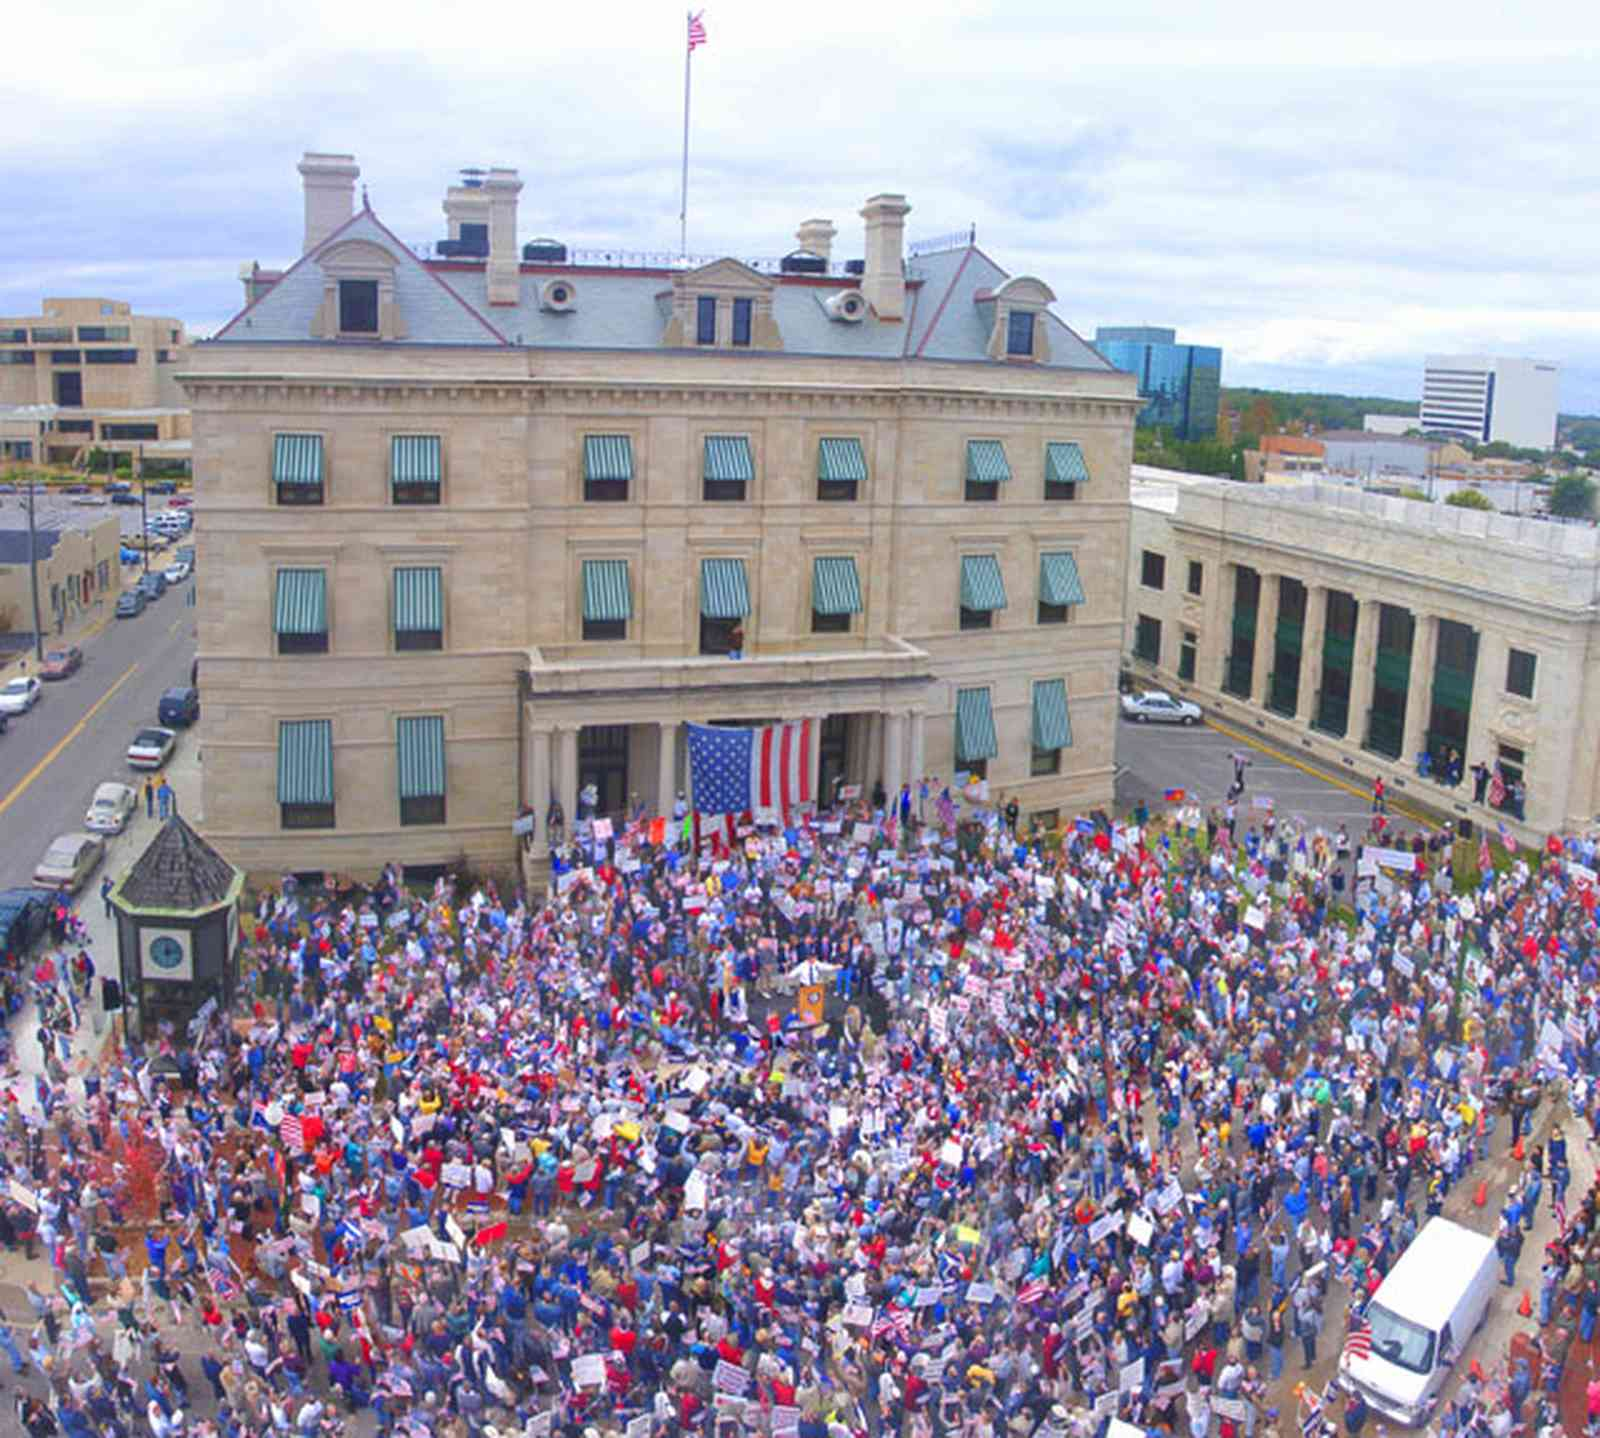 Pensacola:-Palafox-Historic-District:-Escambia-County-Courthouse_01.jpg:  escambia county courthouse, rally, awnings, renaissance revival architecture, american flag, crowd